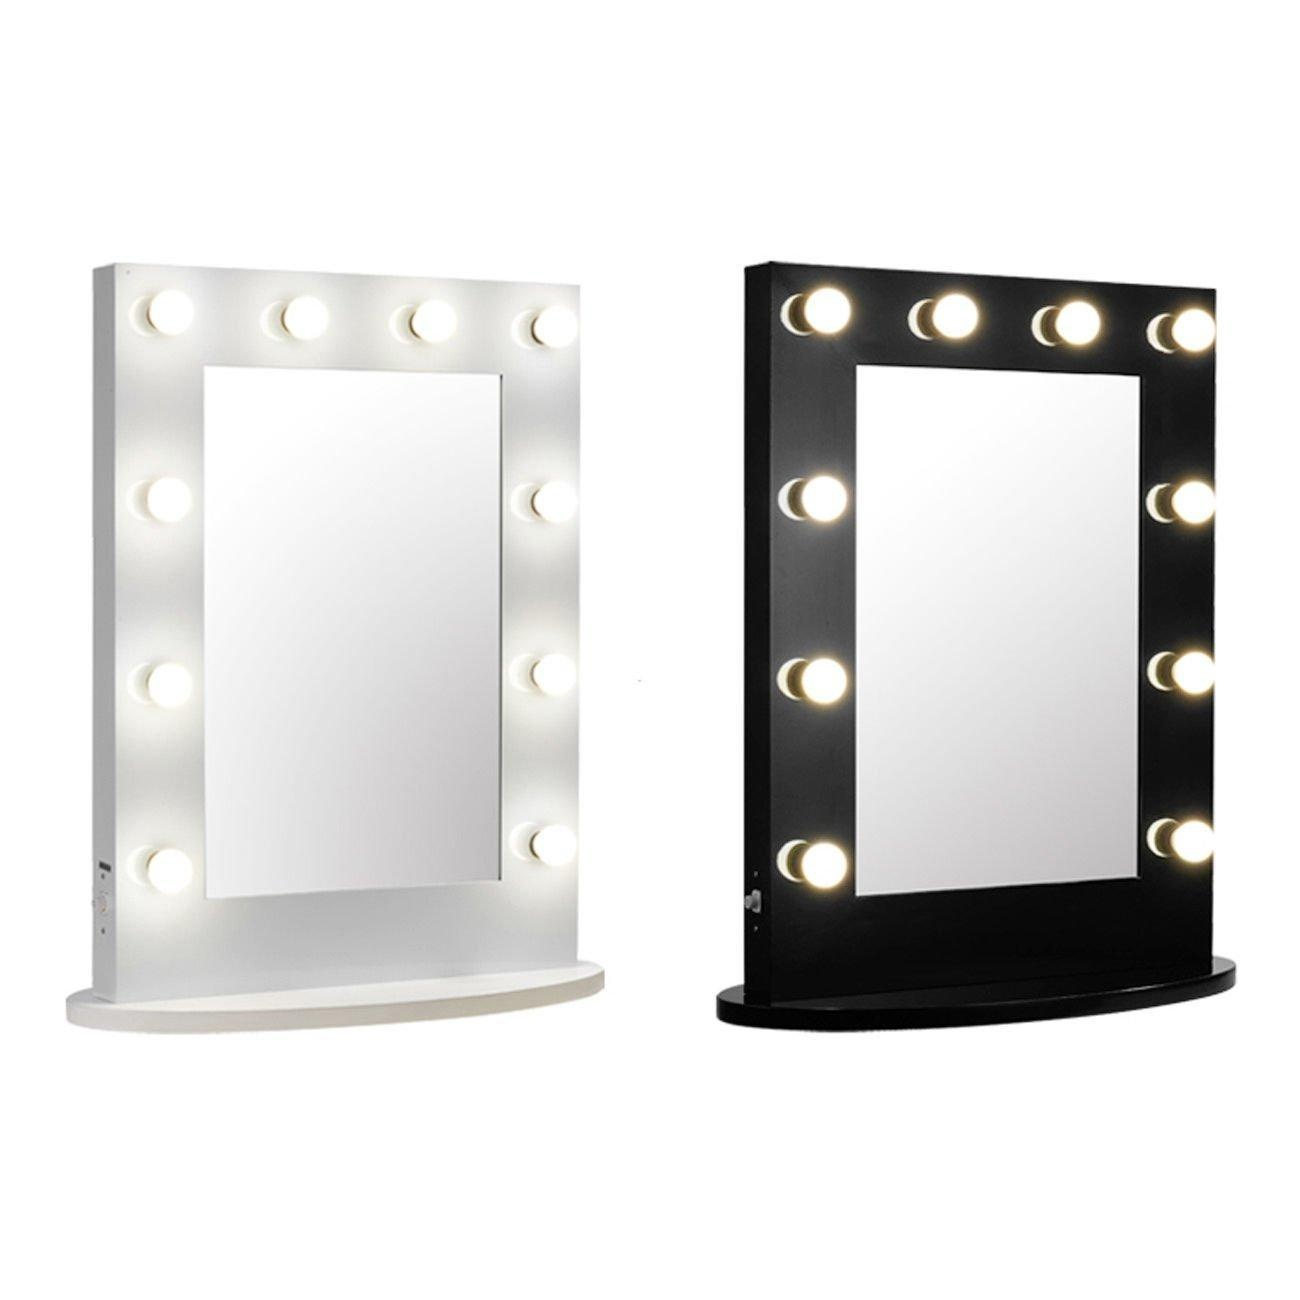 pin mounted us drrw lighting light wall mirror with switch magnifying